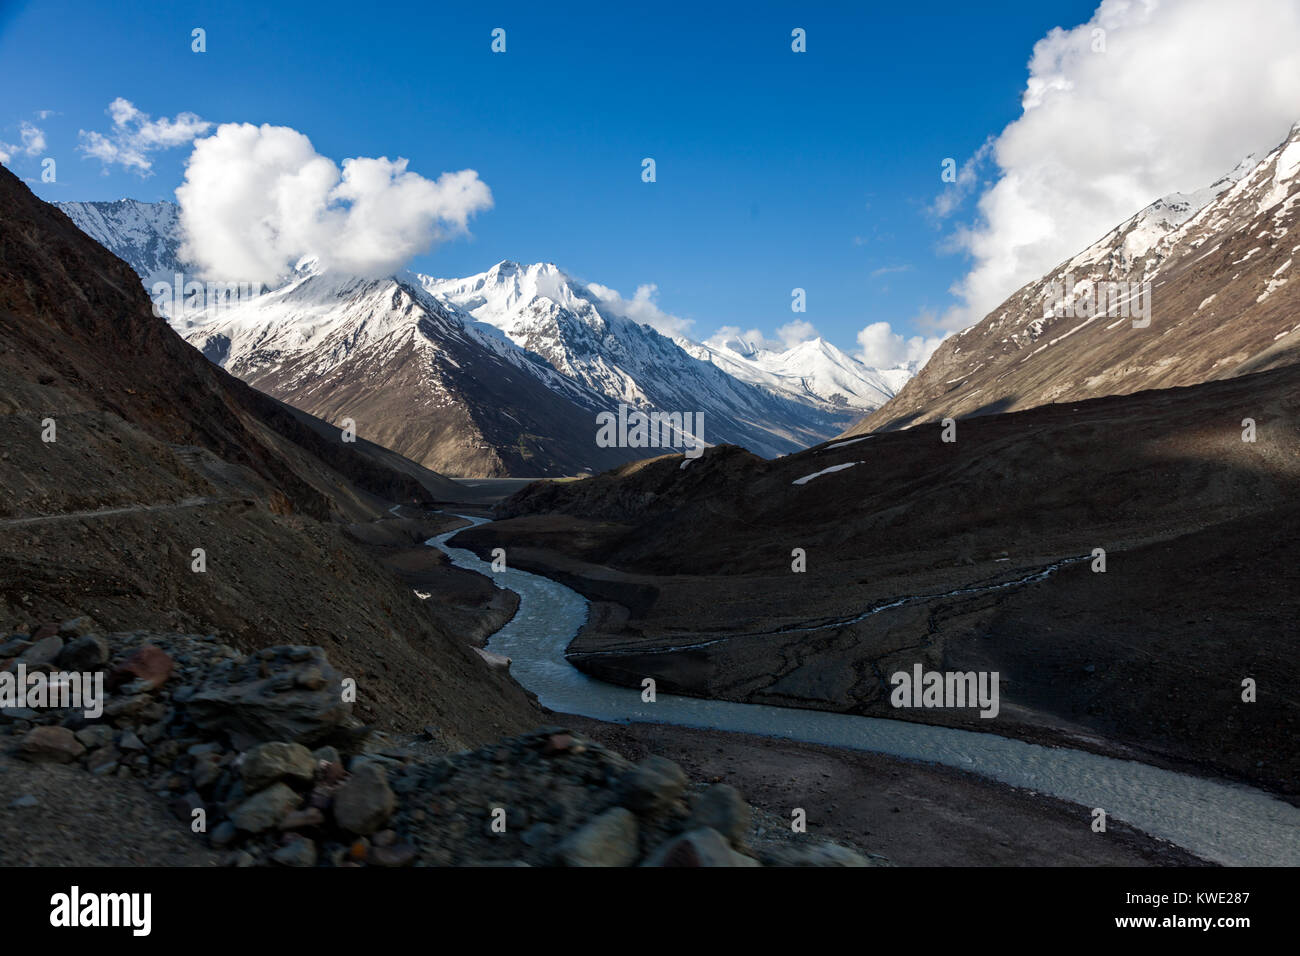 Himalayan landscapes around Chandra Taal during Spiti Valley Road Trip. - Stock Image